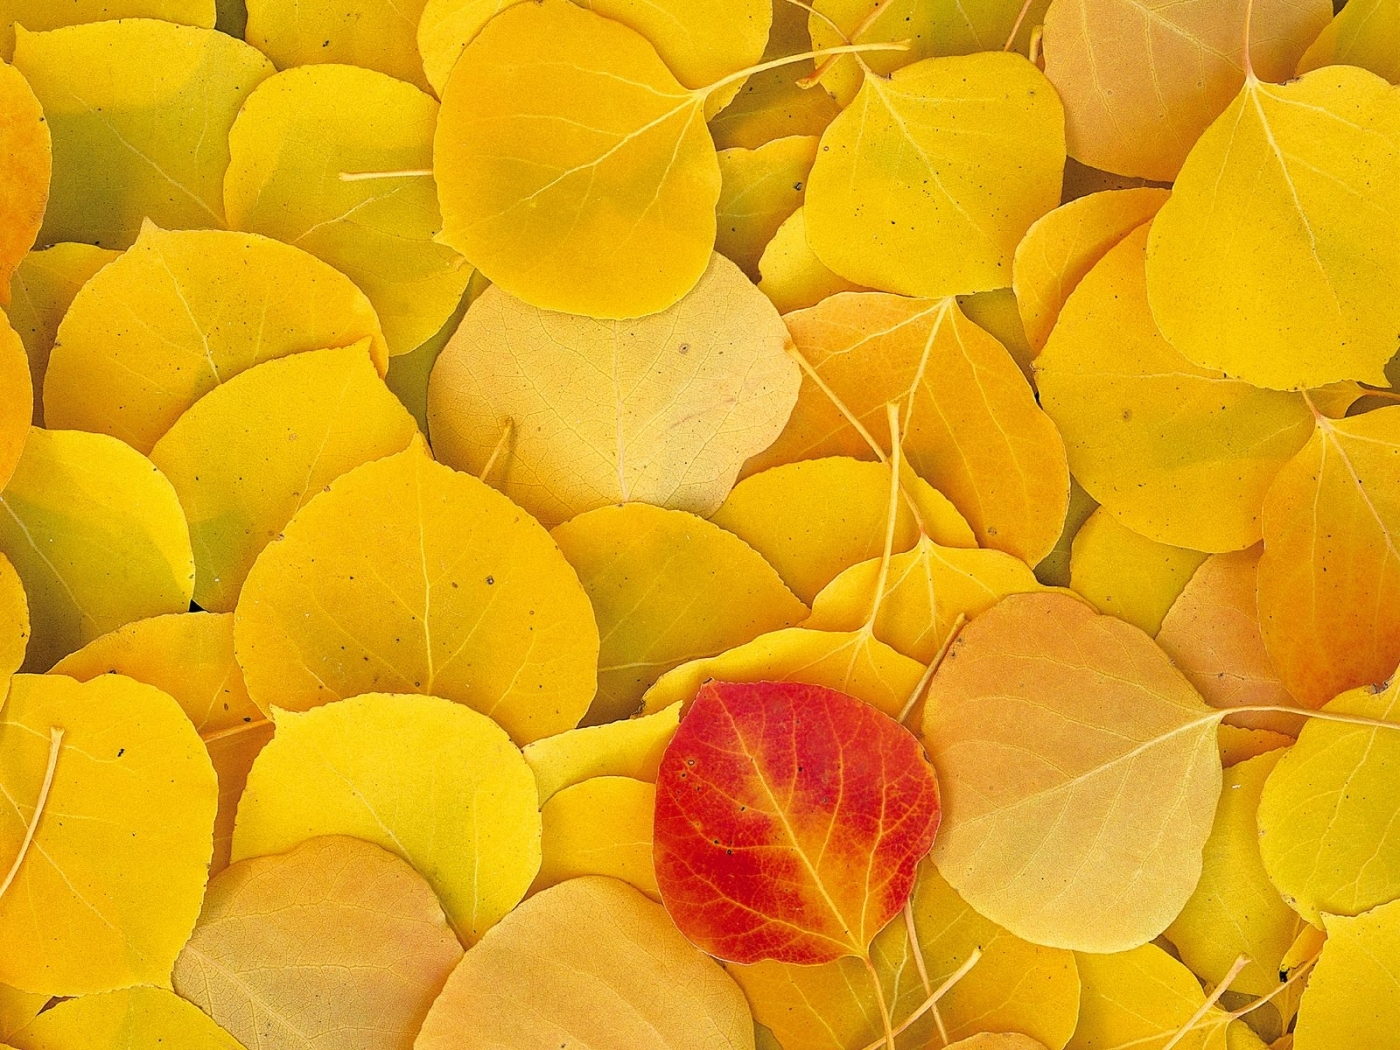 41367 download wallpaper Background, Autumn, Leaves screensavers and pictures for free